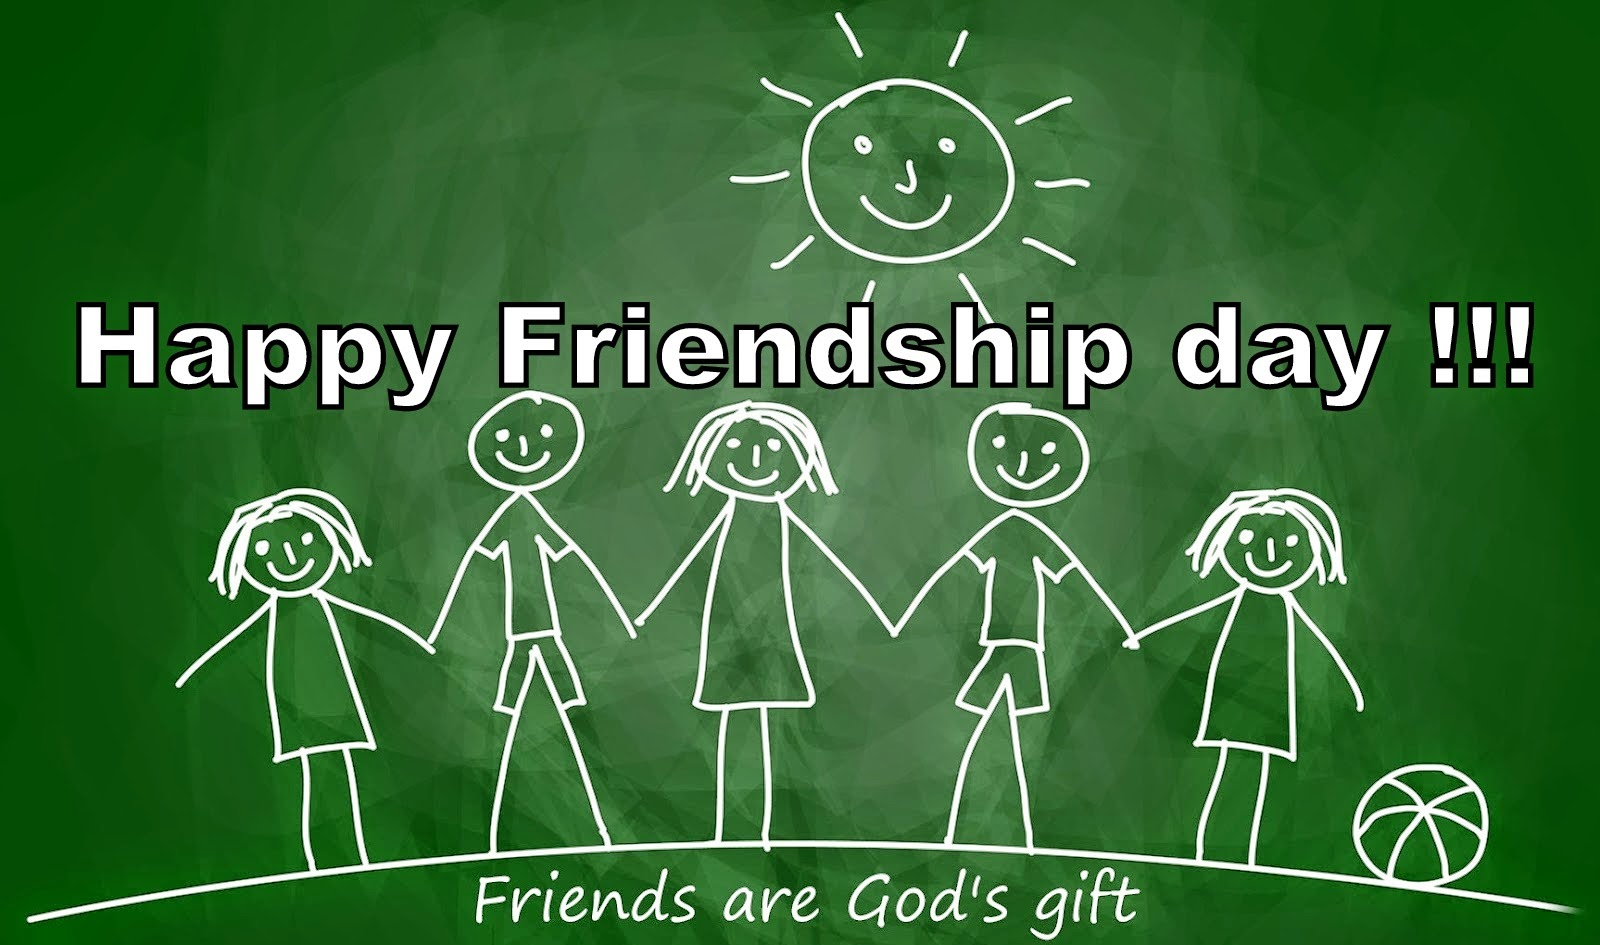 Happy Friendship Day Friends Are Gods Gift